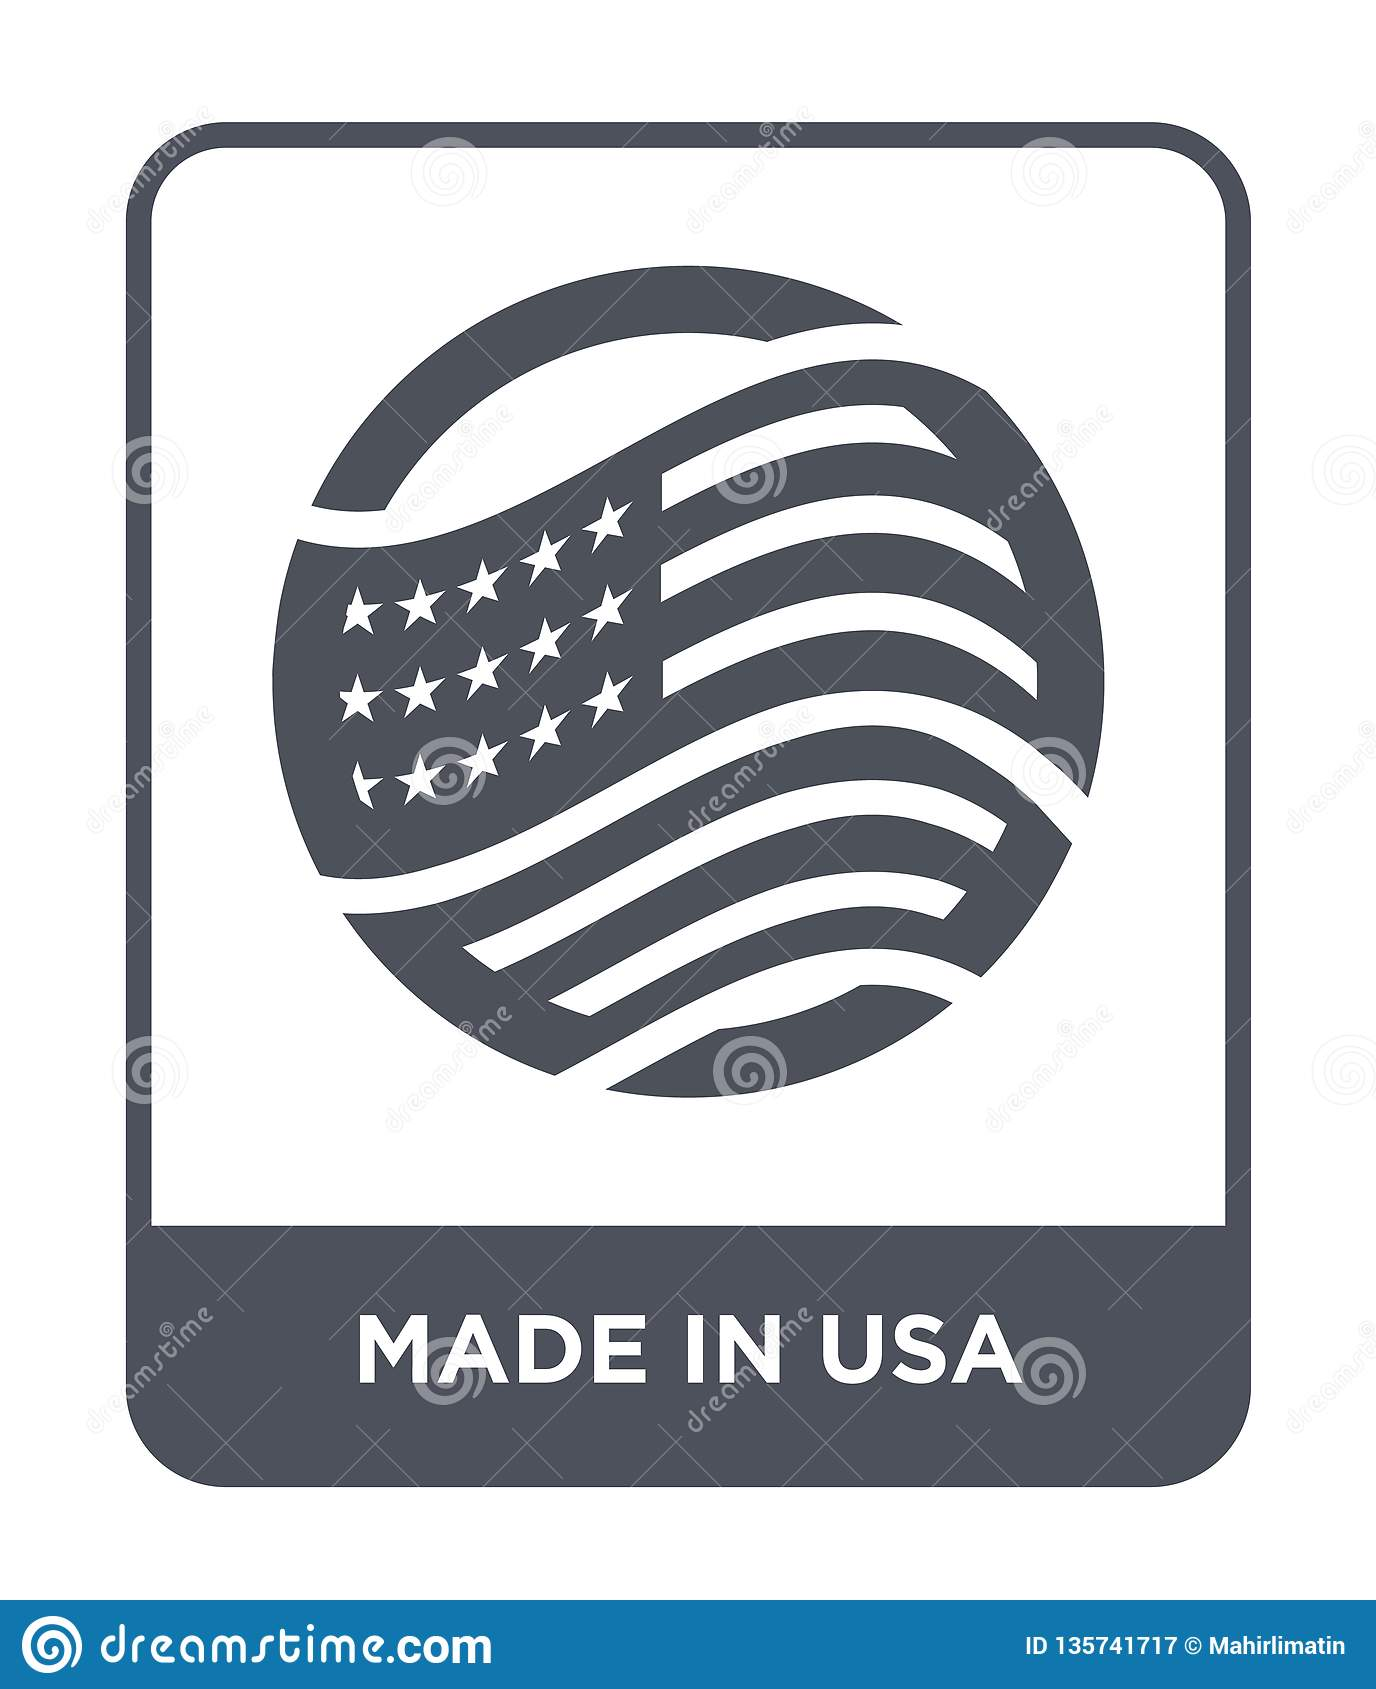 made in usa icon in trendy design style. made in usa icon isolated on white background. made in usa vector icon simple and modern